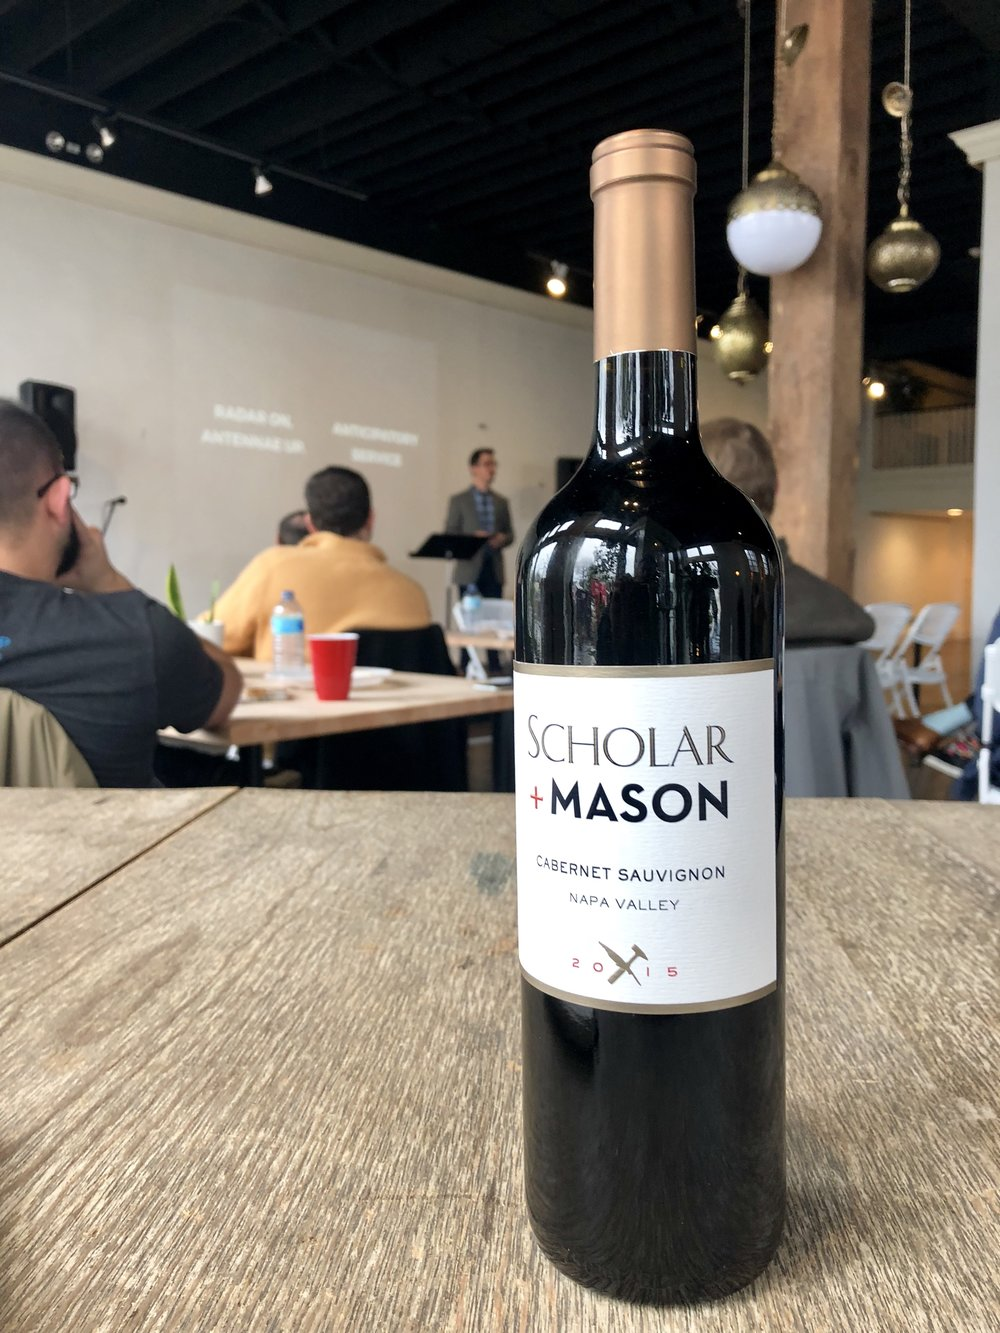 Dr. Will Gray sharing about insights from the Ritz Carlton's leadership summit, at Flourishment February. Every month there is a drawing for a bottle of wine from Napa Valley.